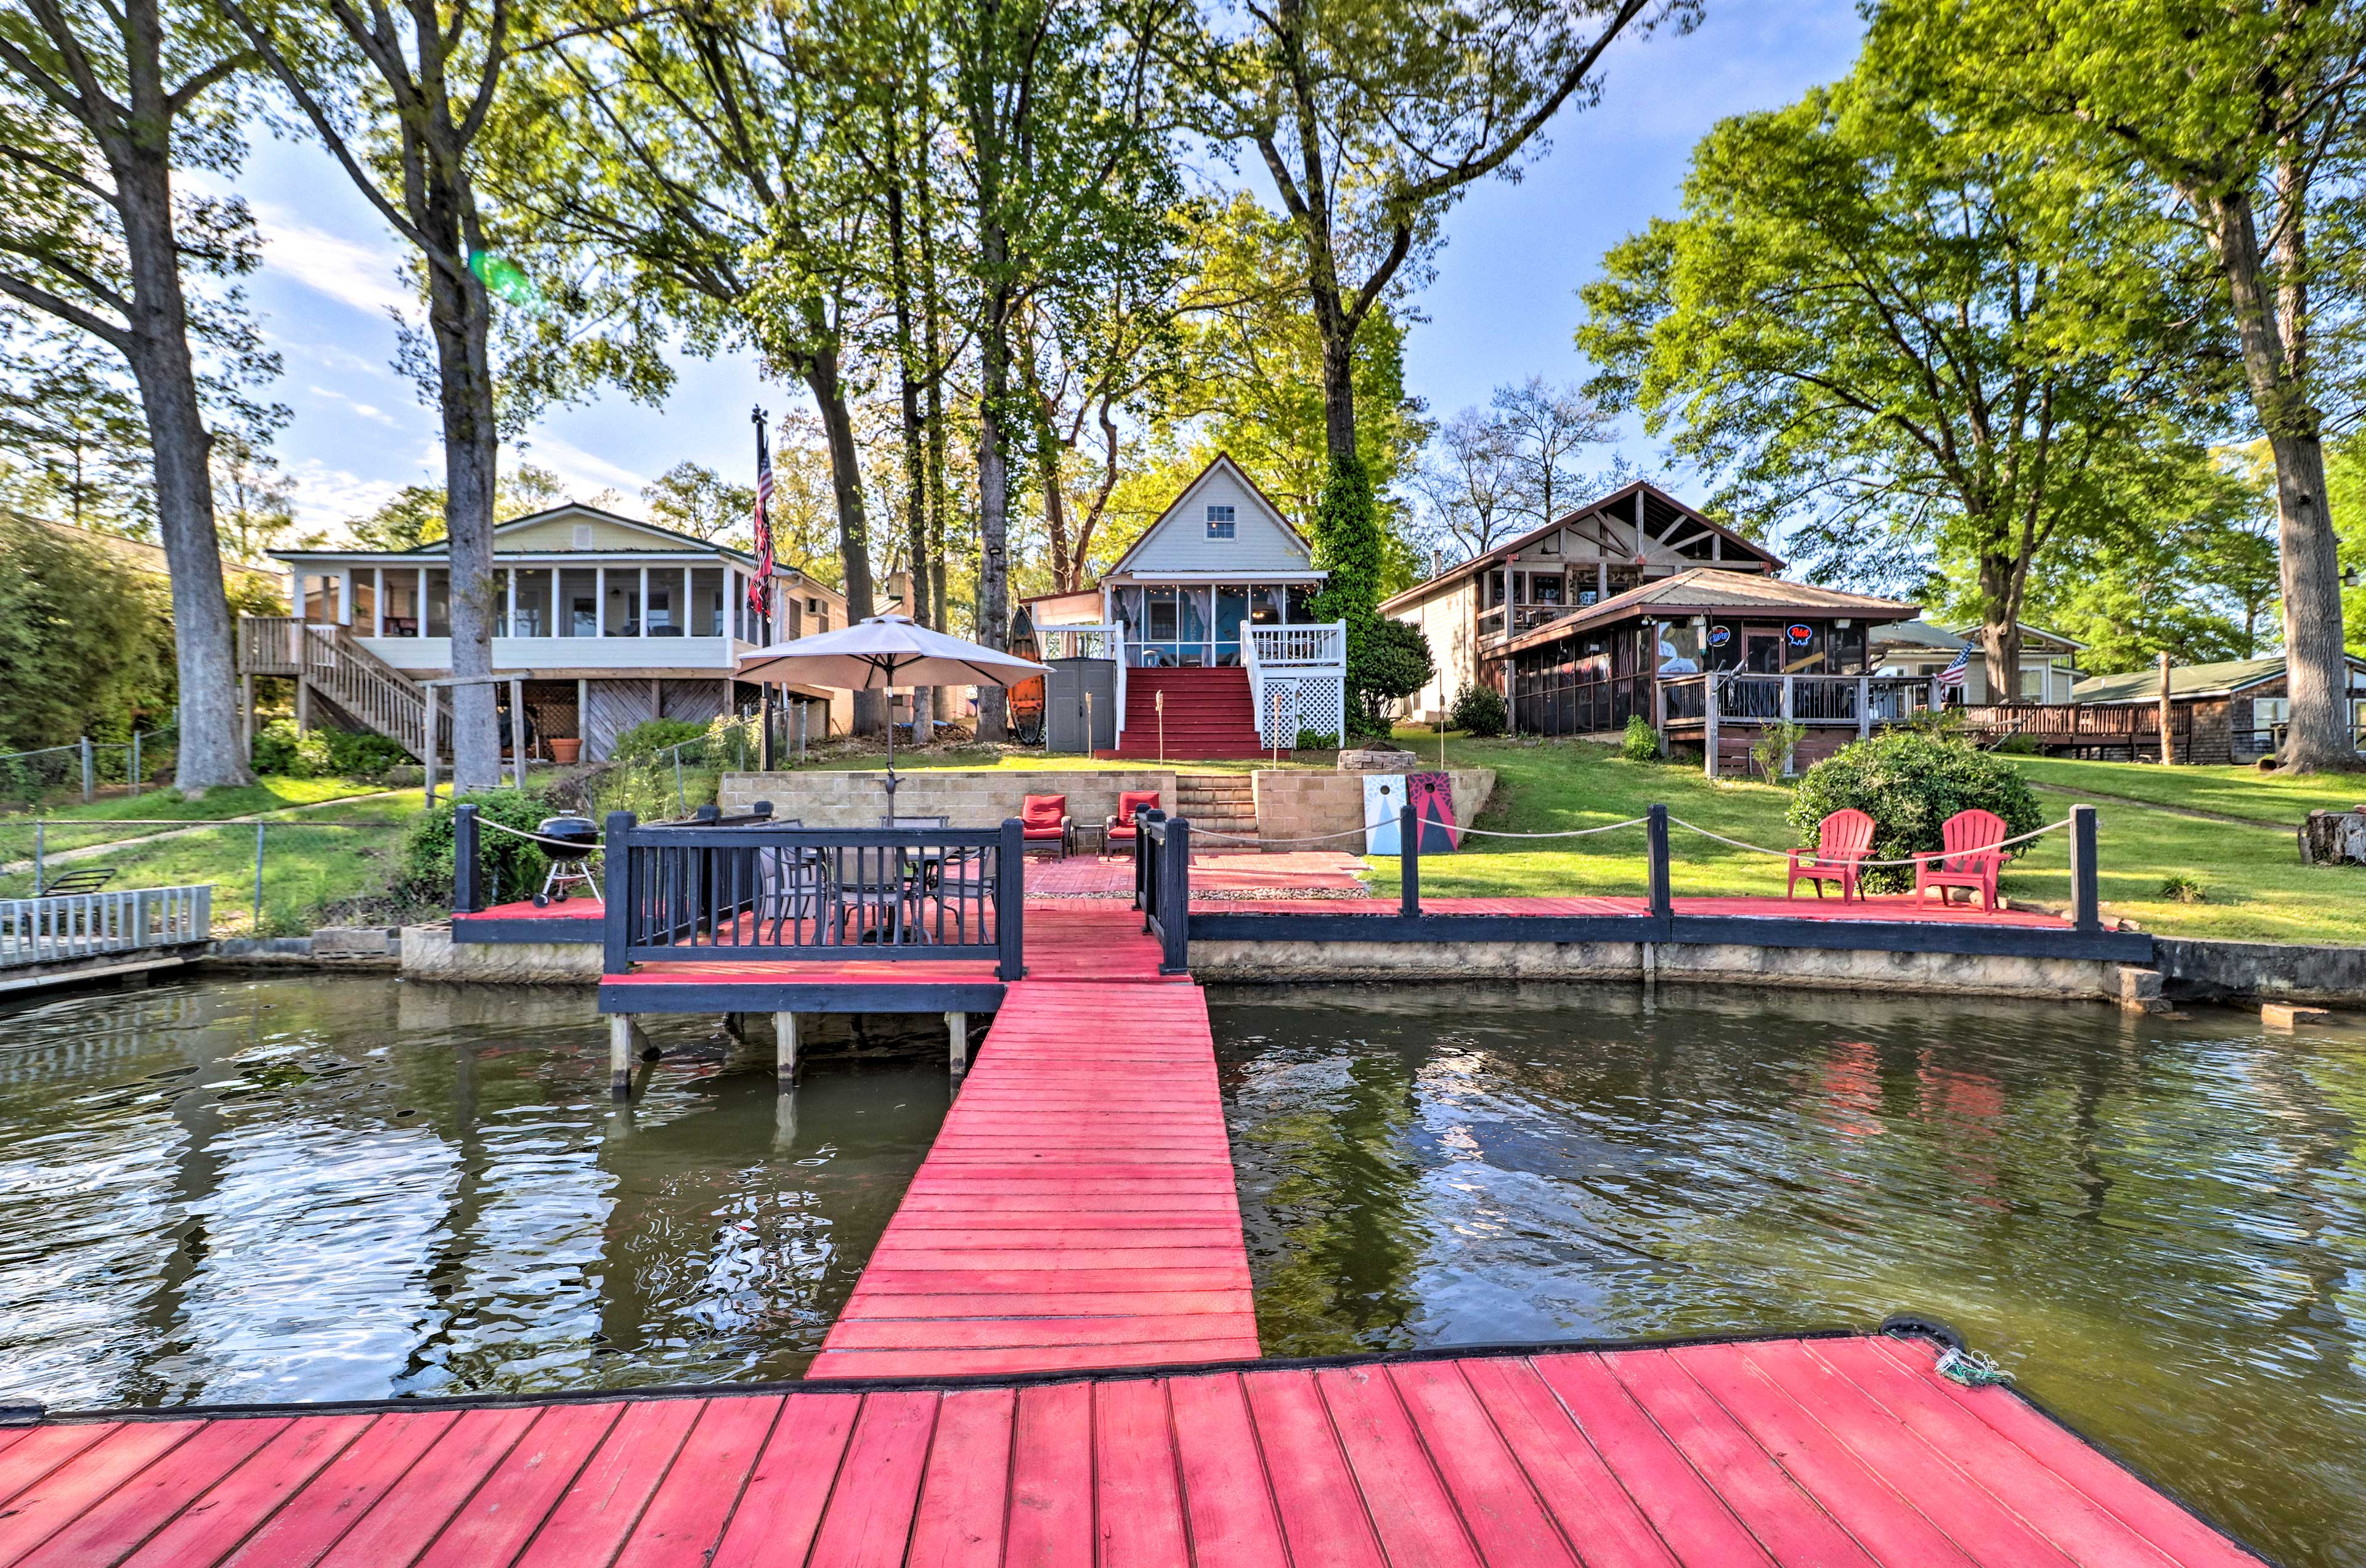 Take a walk down to the dock.